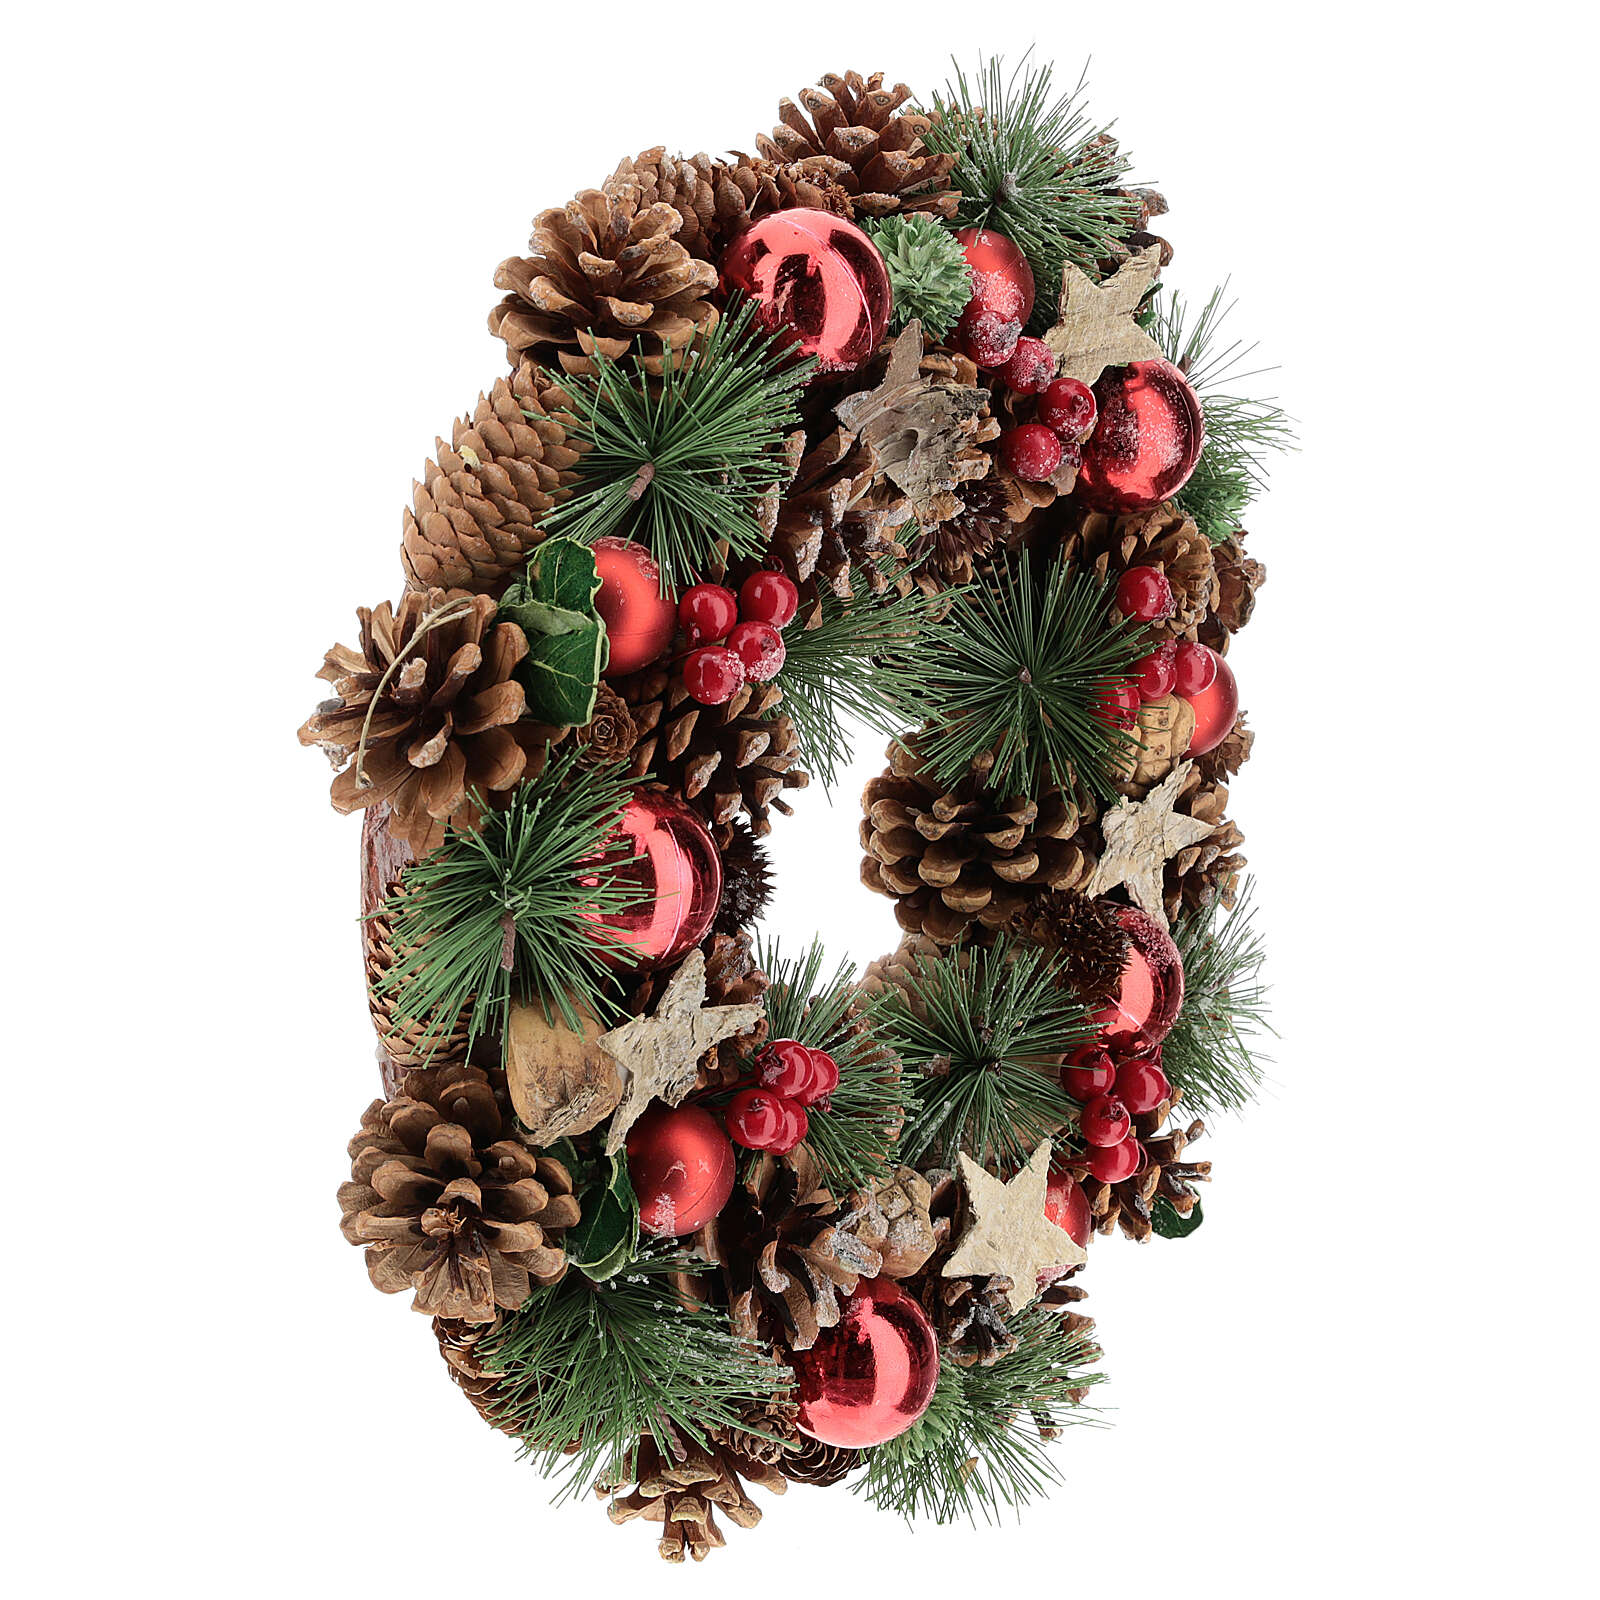 Christmas wreath with pine cone and pine branches diam. 30 cm 3